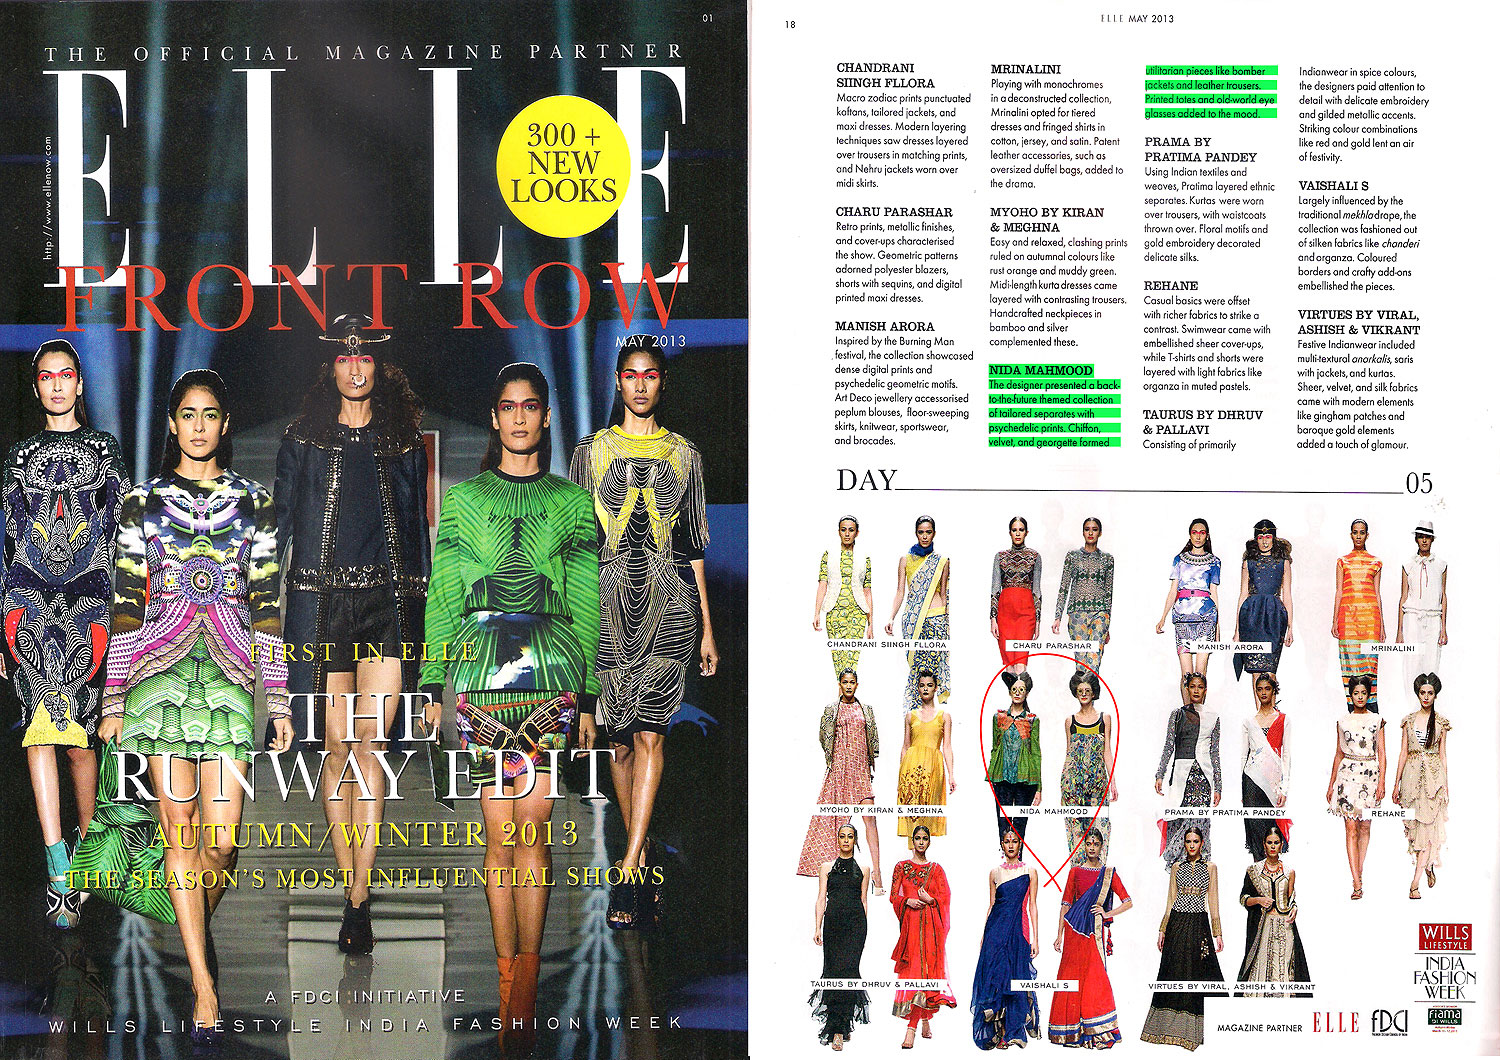 indian-fashion-designer-nida-mahmood-featured-in-Elle-front-row-magazine-for-the-adventures-of-capt-must-qalandar